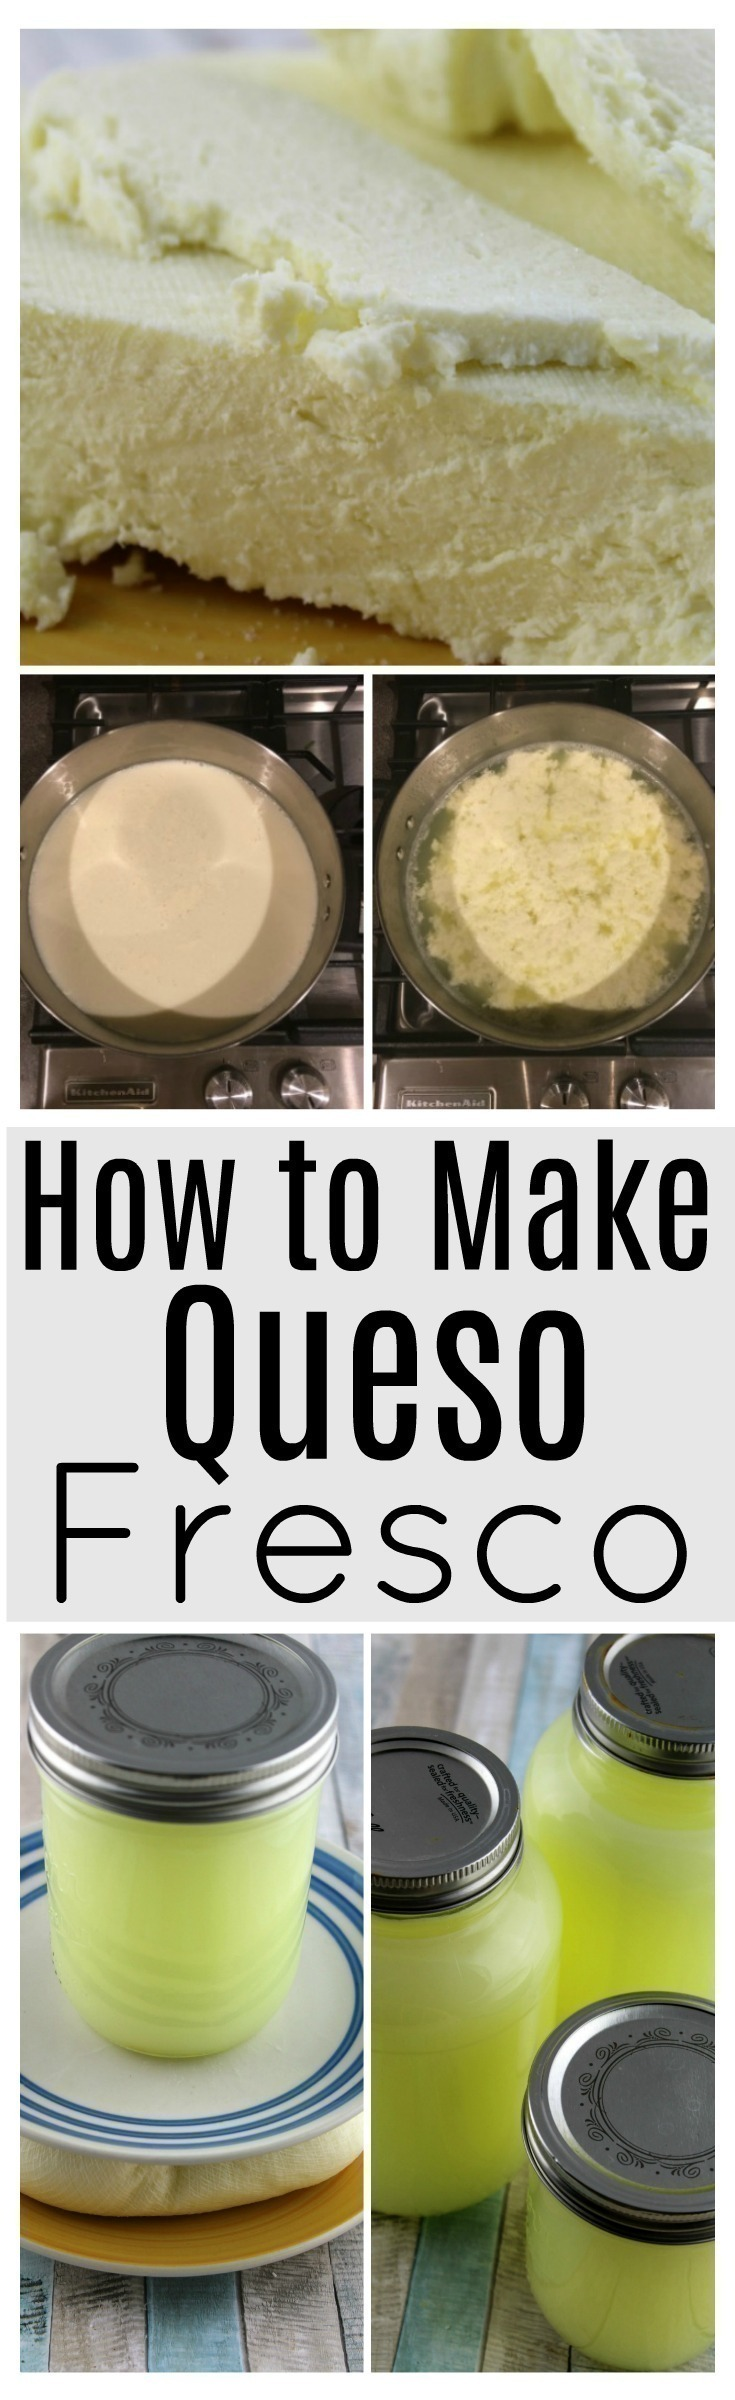 Explore the art of food craft and make your own cheese. This quick and simple recipe for queso fresco (fresh cheese) is the perfect place to start.